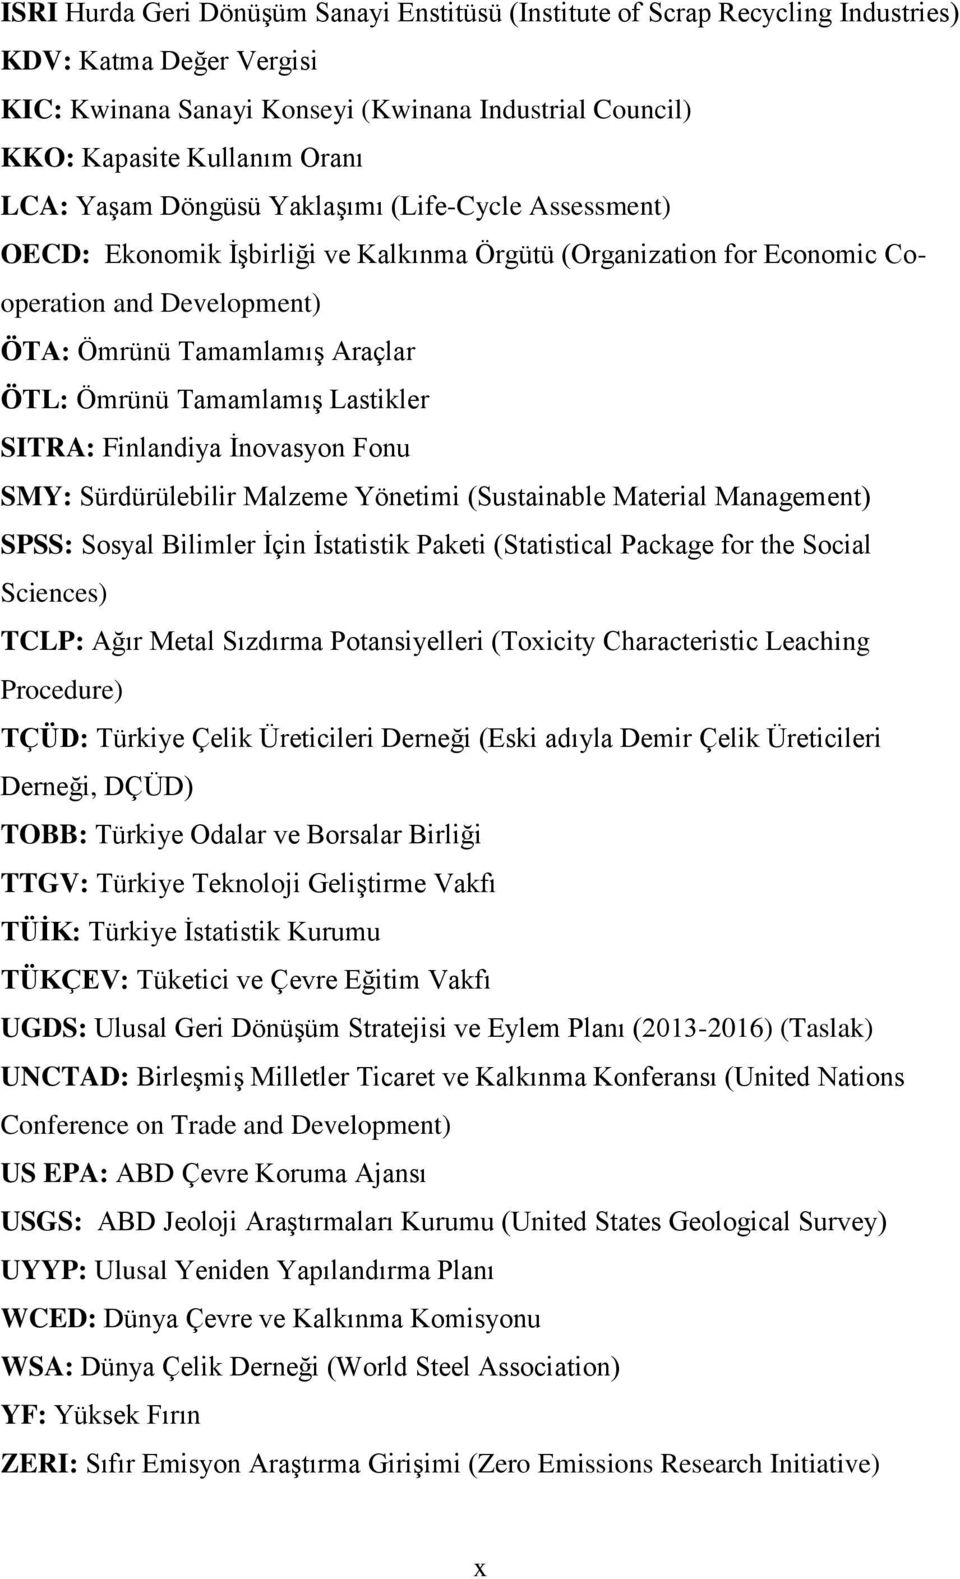 Tamamlamış Lastikler SITRA: Finlandiya İnovasyon Fonu SMY: Sürdürülebilir Malzeme Yönetimi (Sustainable Material Management) SPSS: Sosyal Bilimler İçin İstatistik Paketi (Statistical Package for the